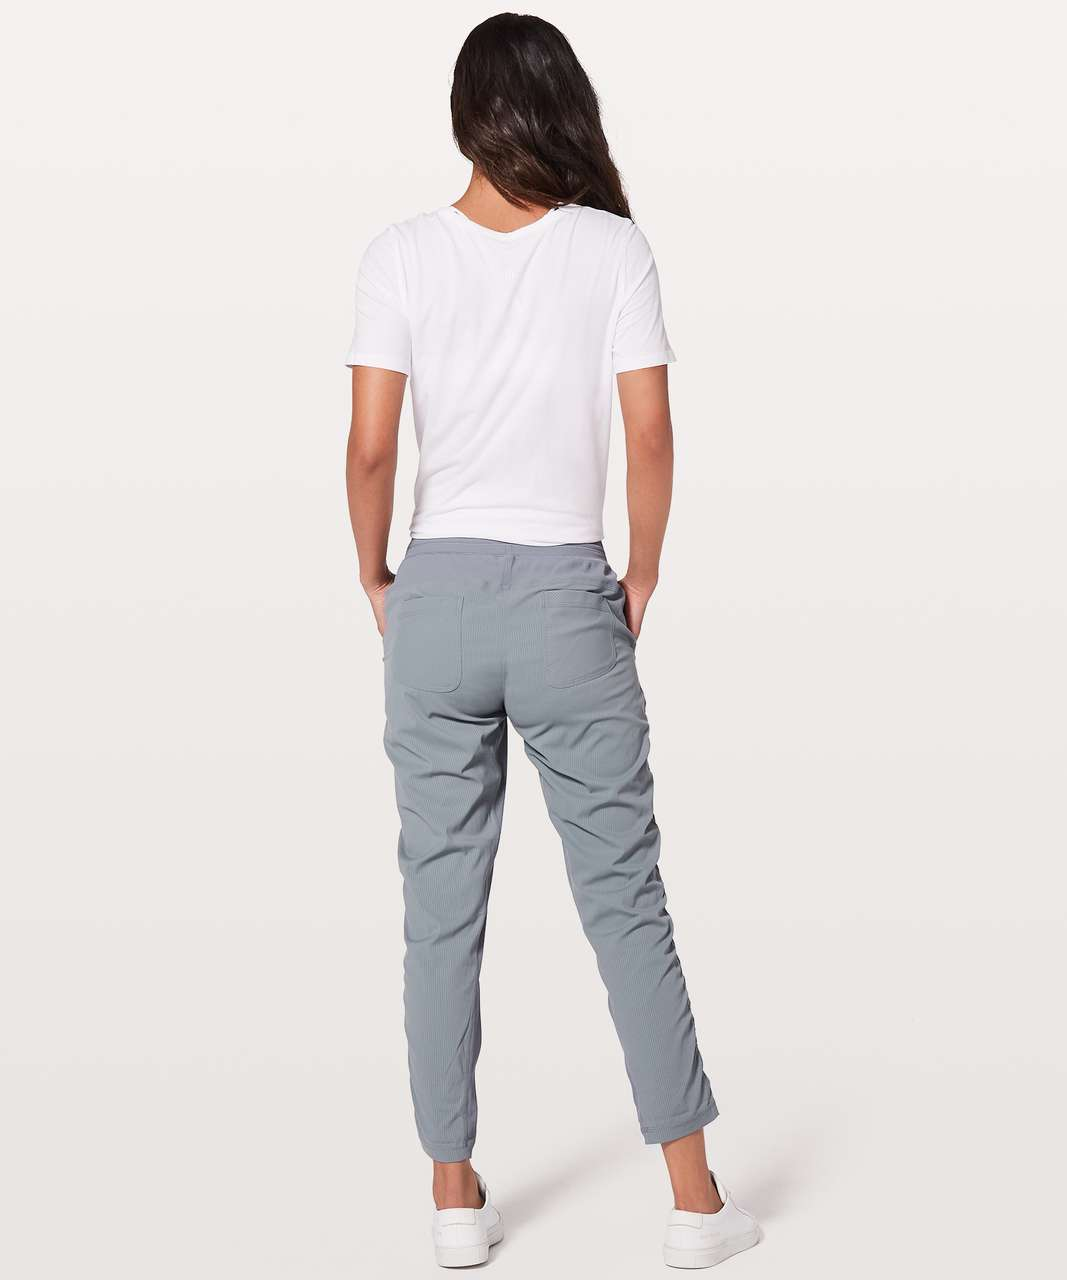 "Lululemon Street To Studio Pant II *Unlined 28"" - Magnet Grey"